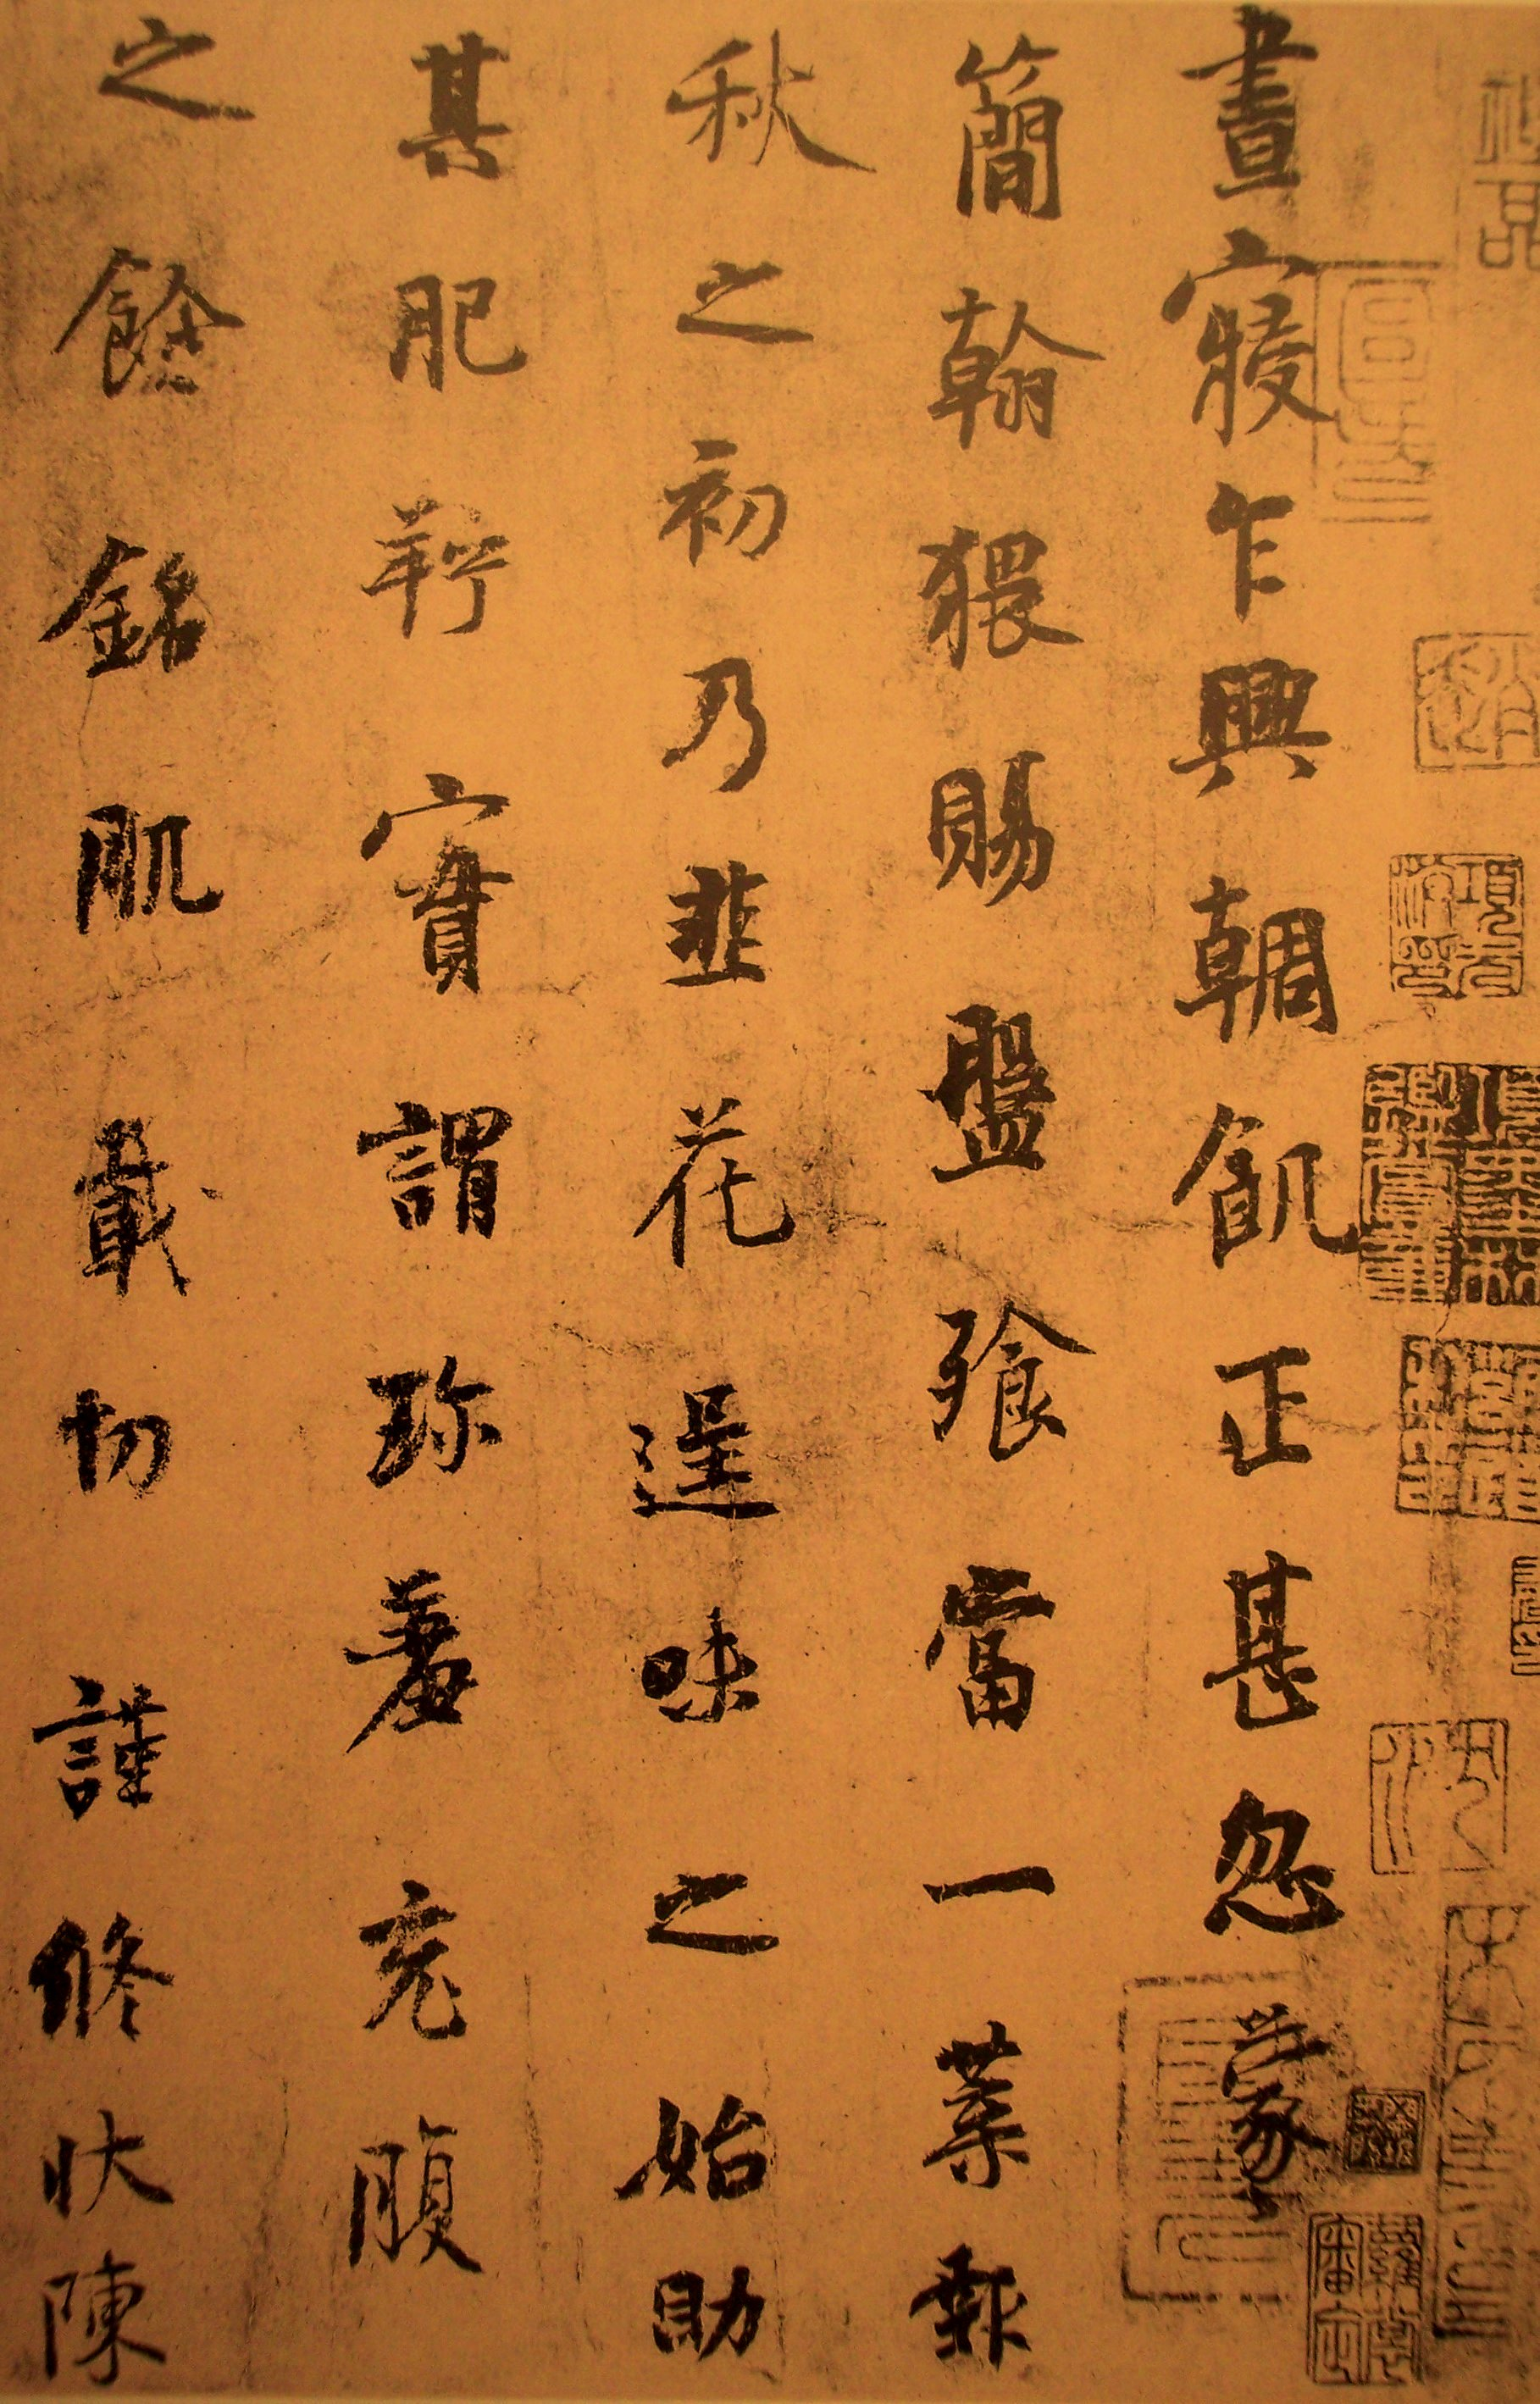 Chinese Calligraphy In Tang Dynasty